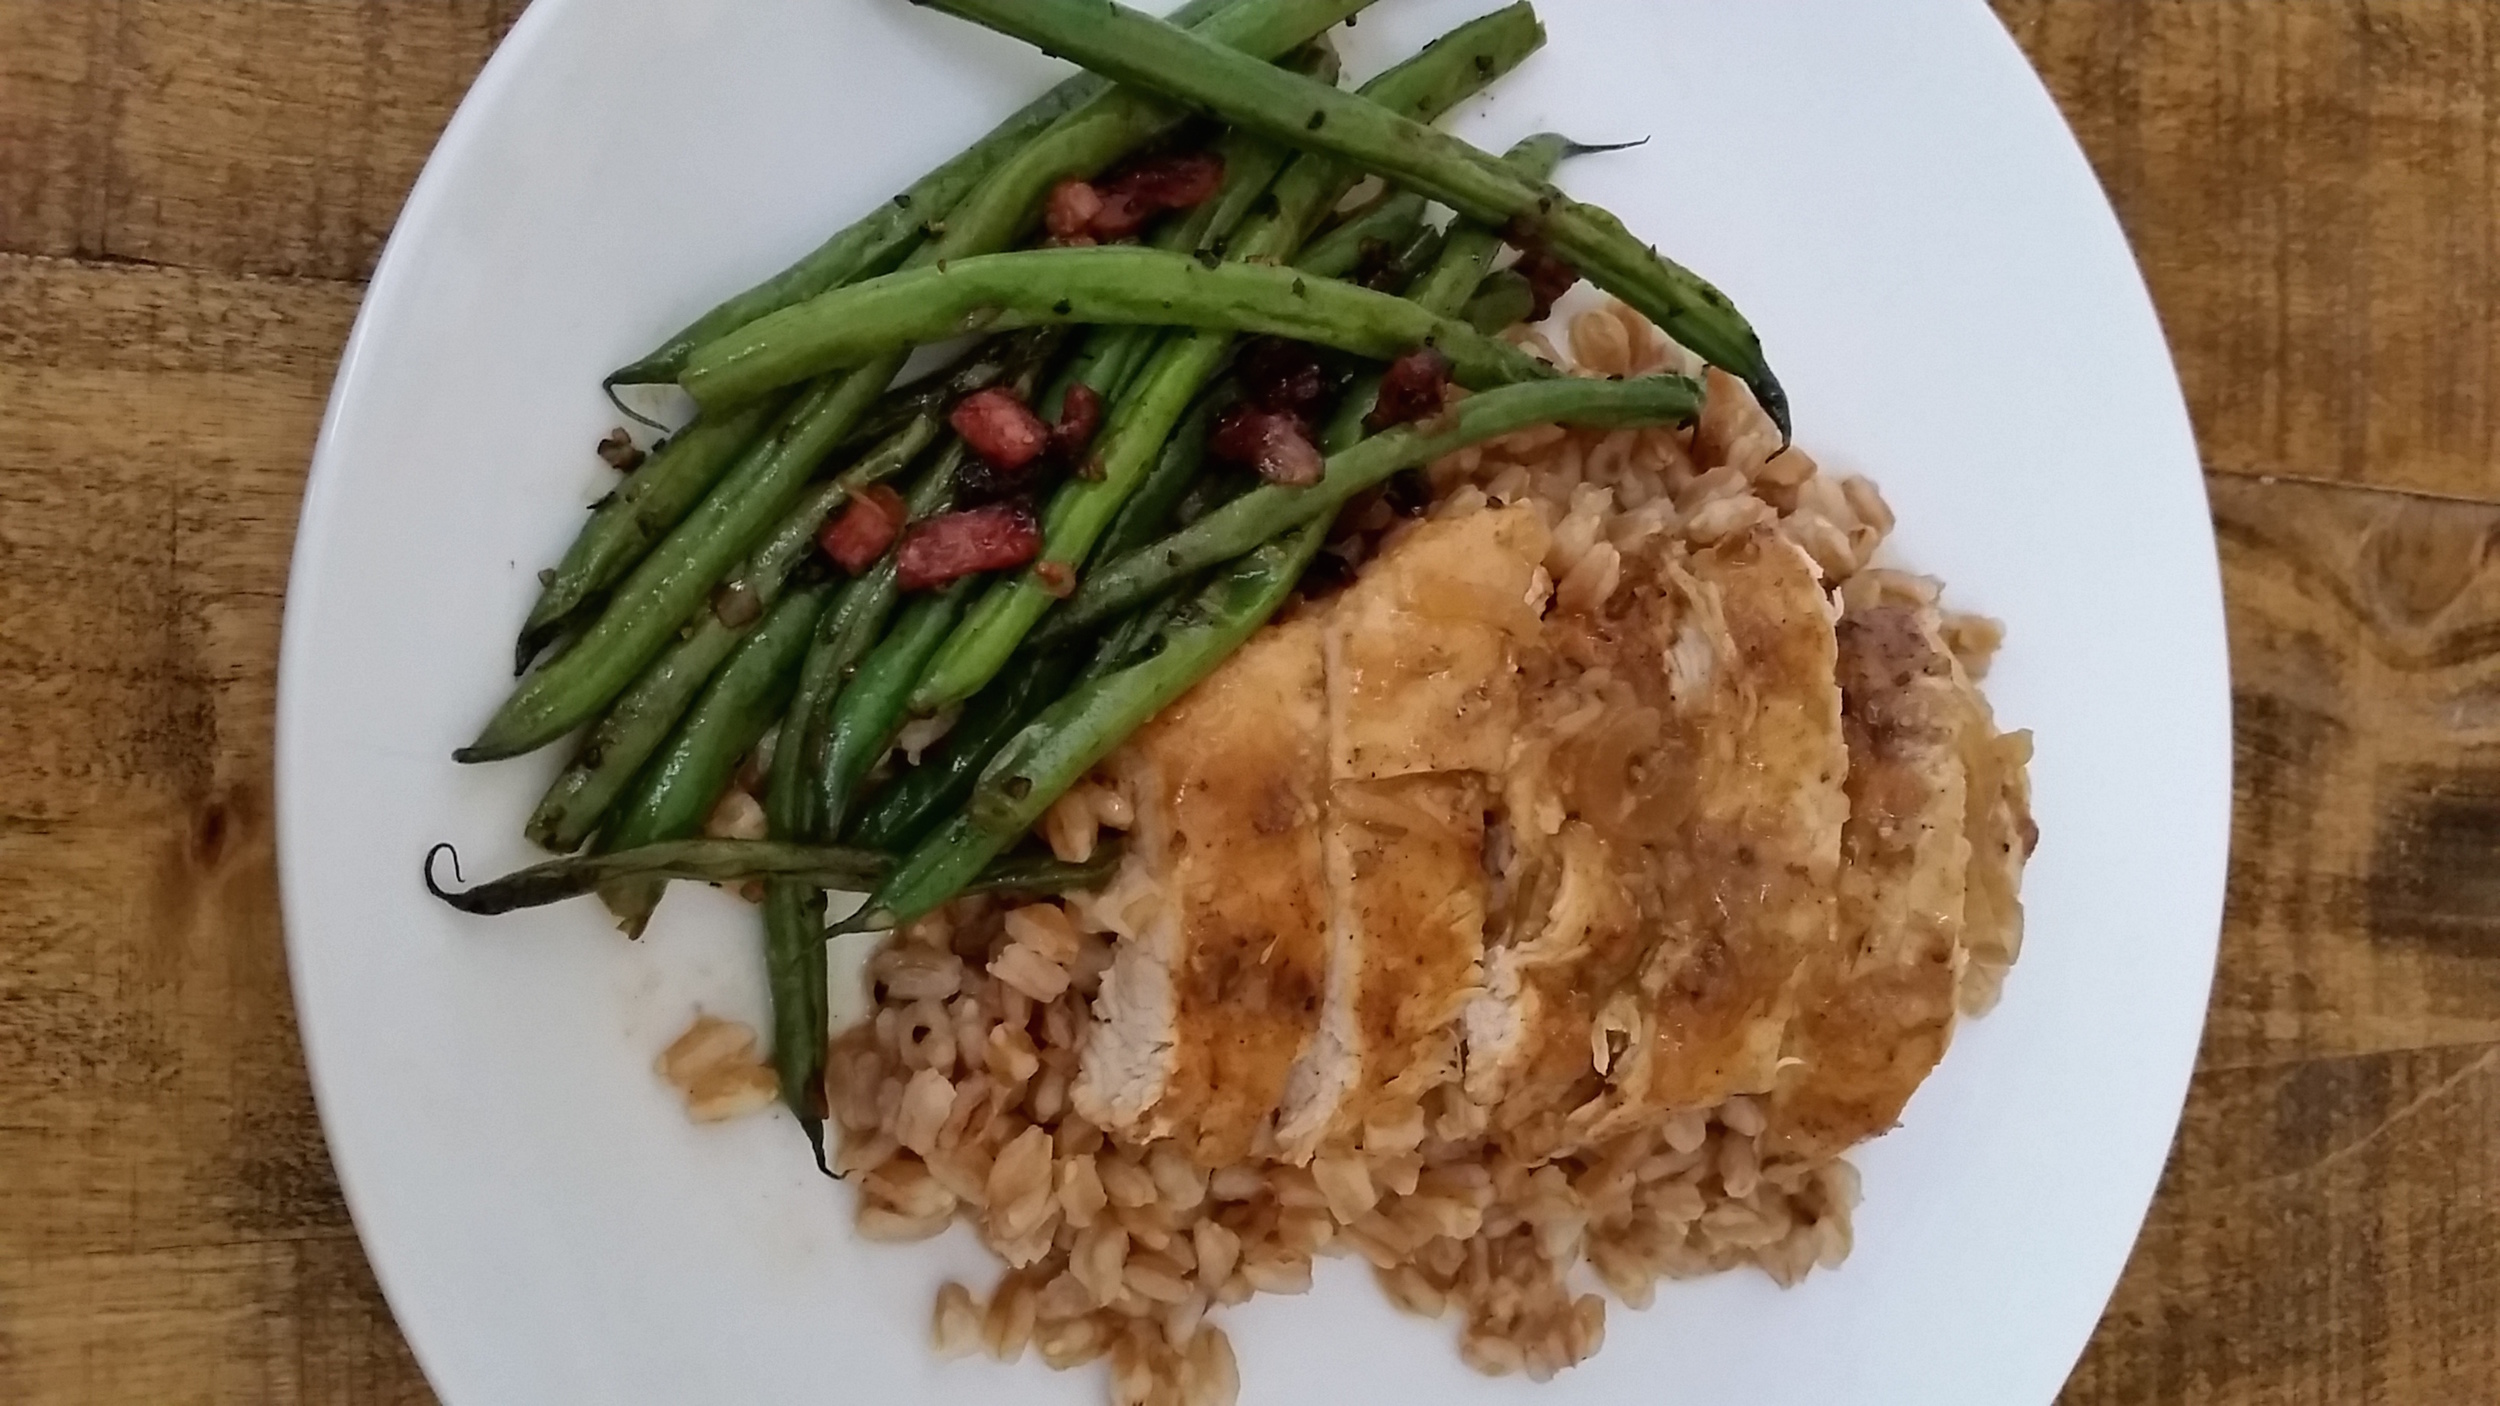 Braised Chicken Breast over Farro and French Green Beans Sauteed w/ Bacon & Shallots